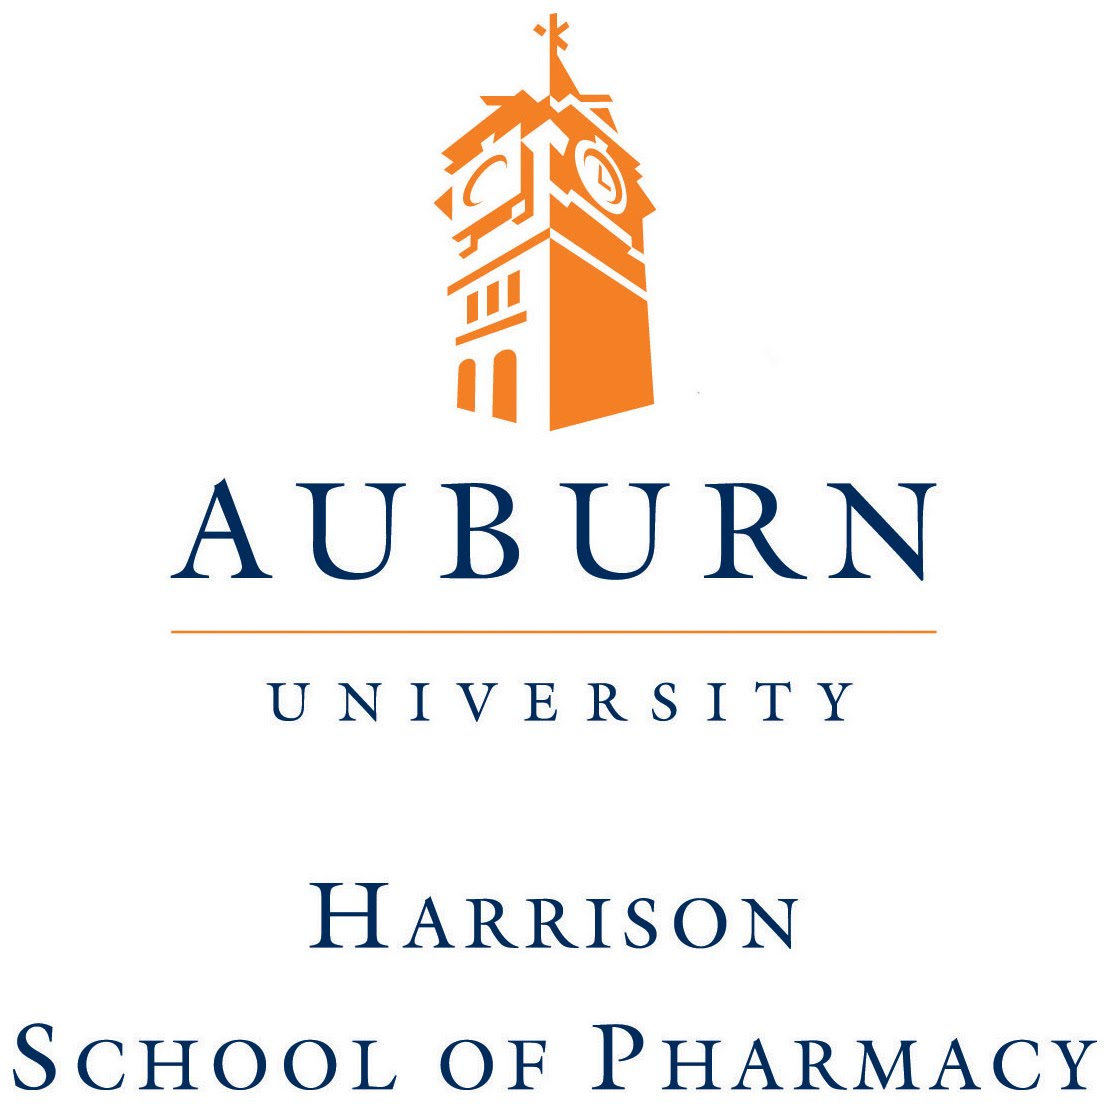 auburn univeristy school of pharmacy